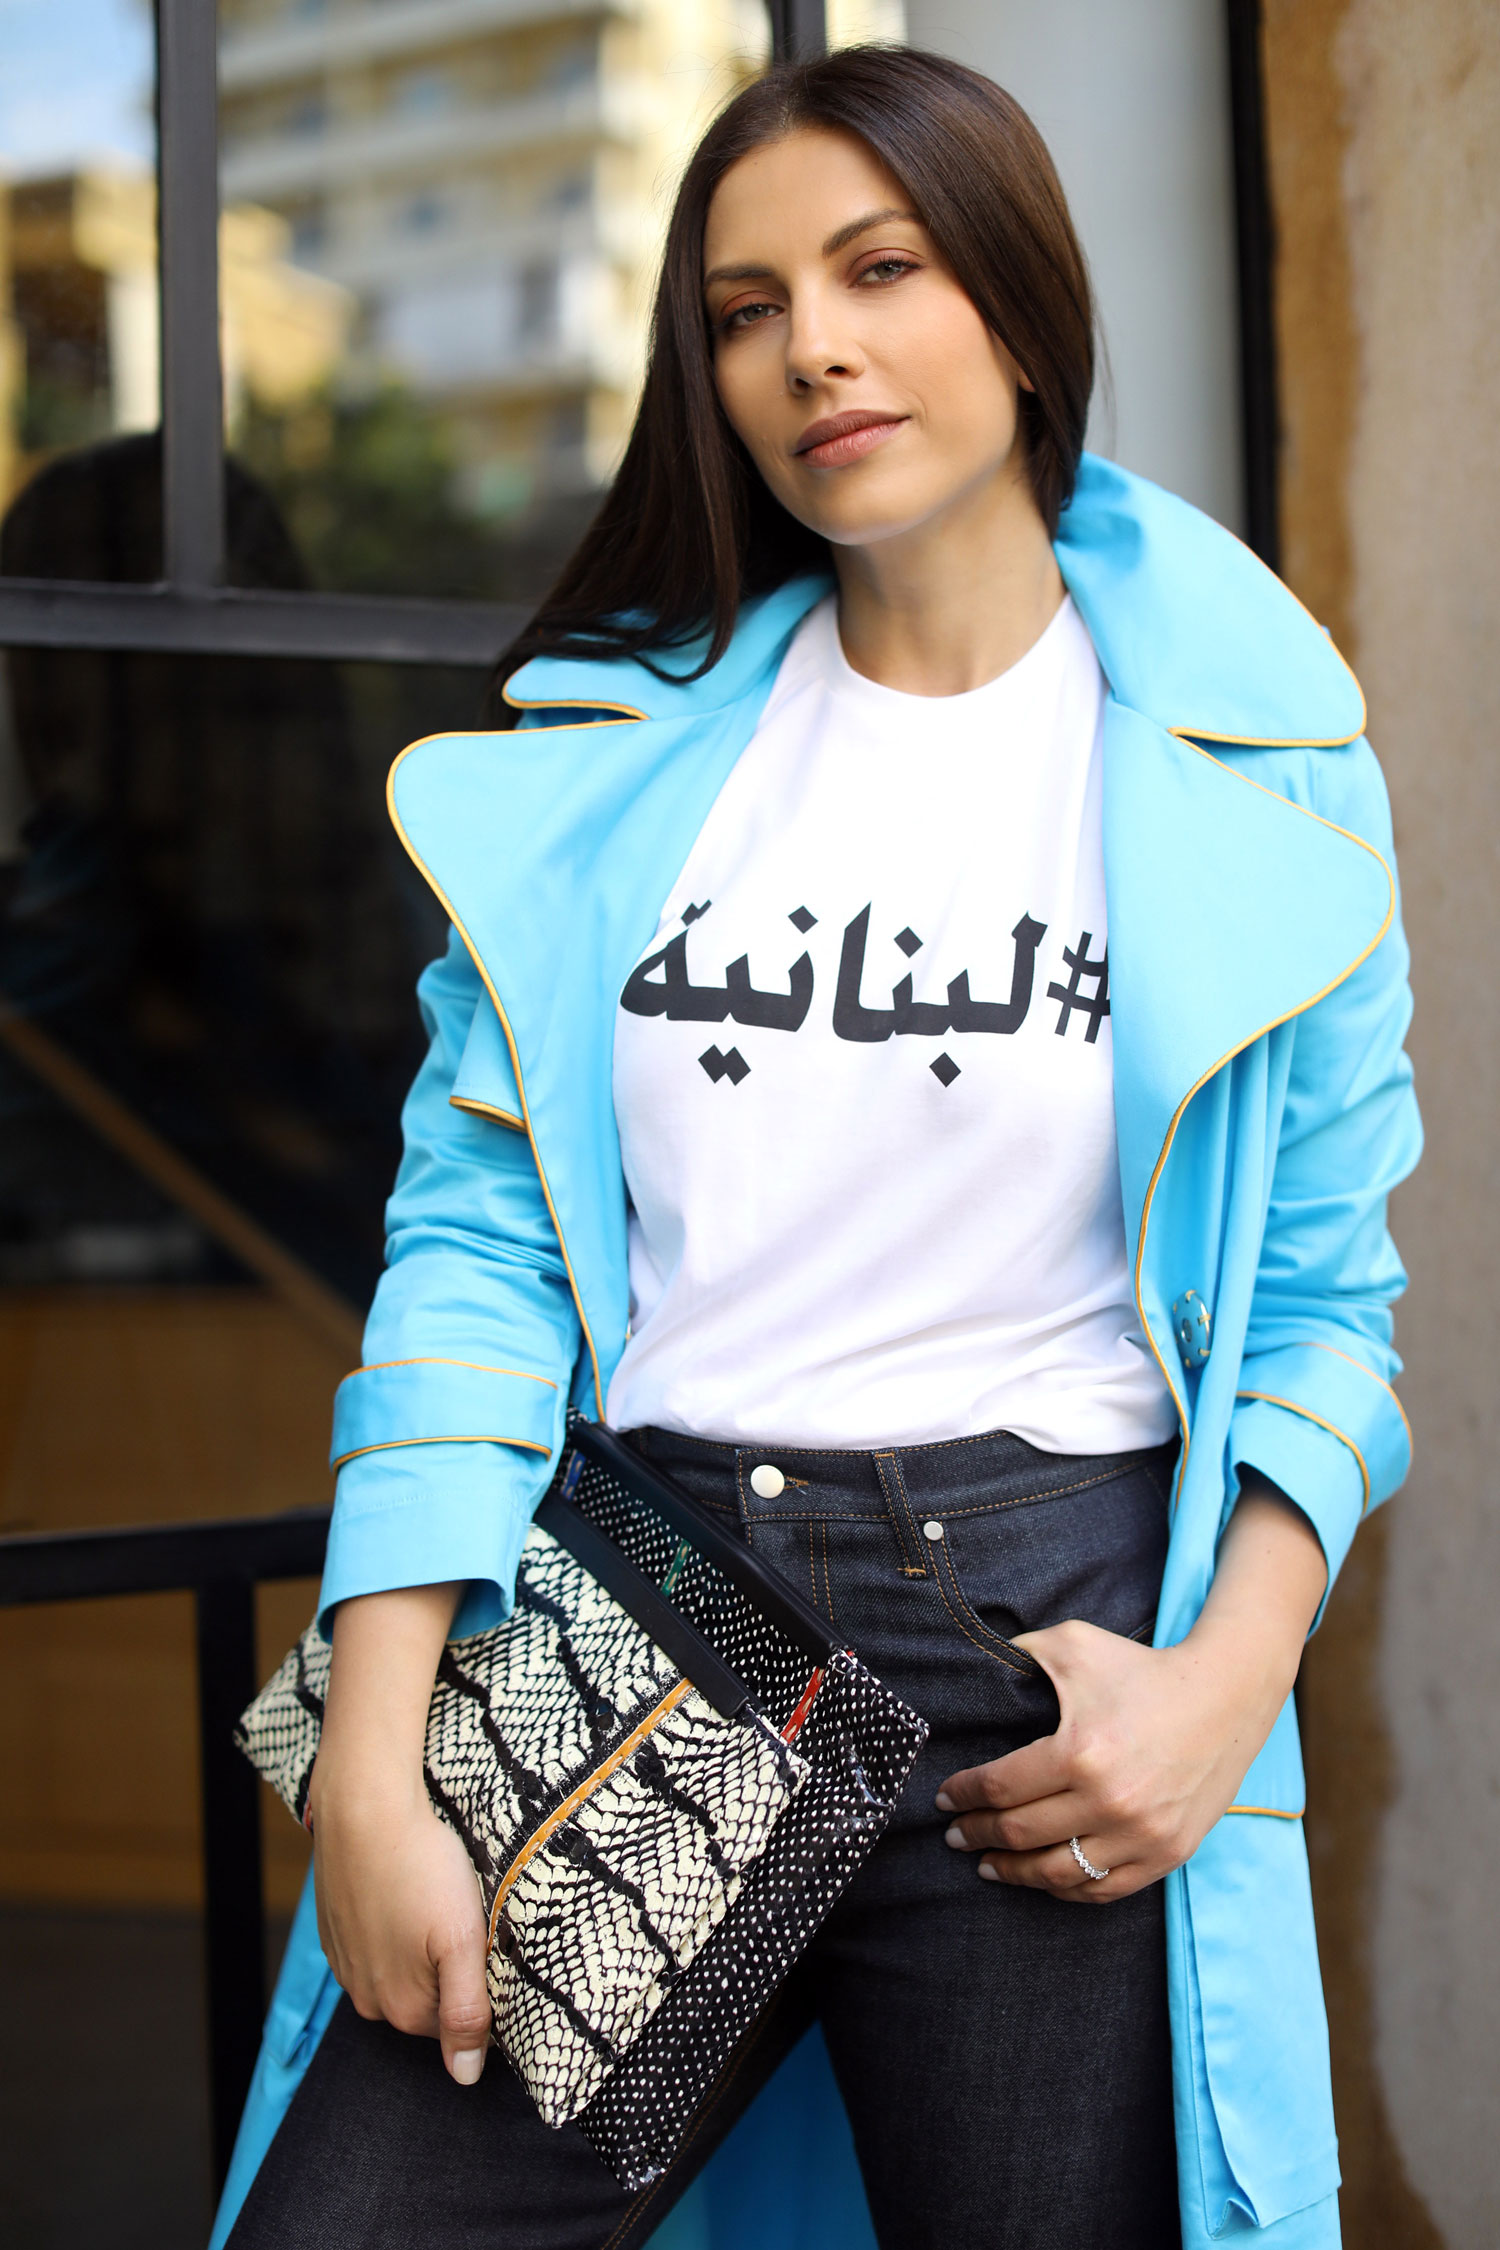 Statement coat and graphic tshirt